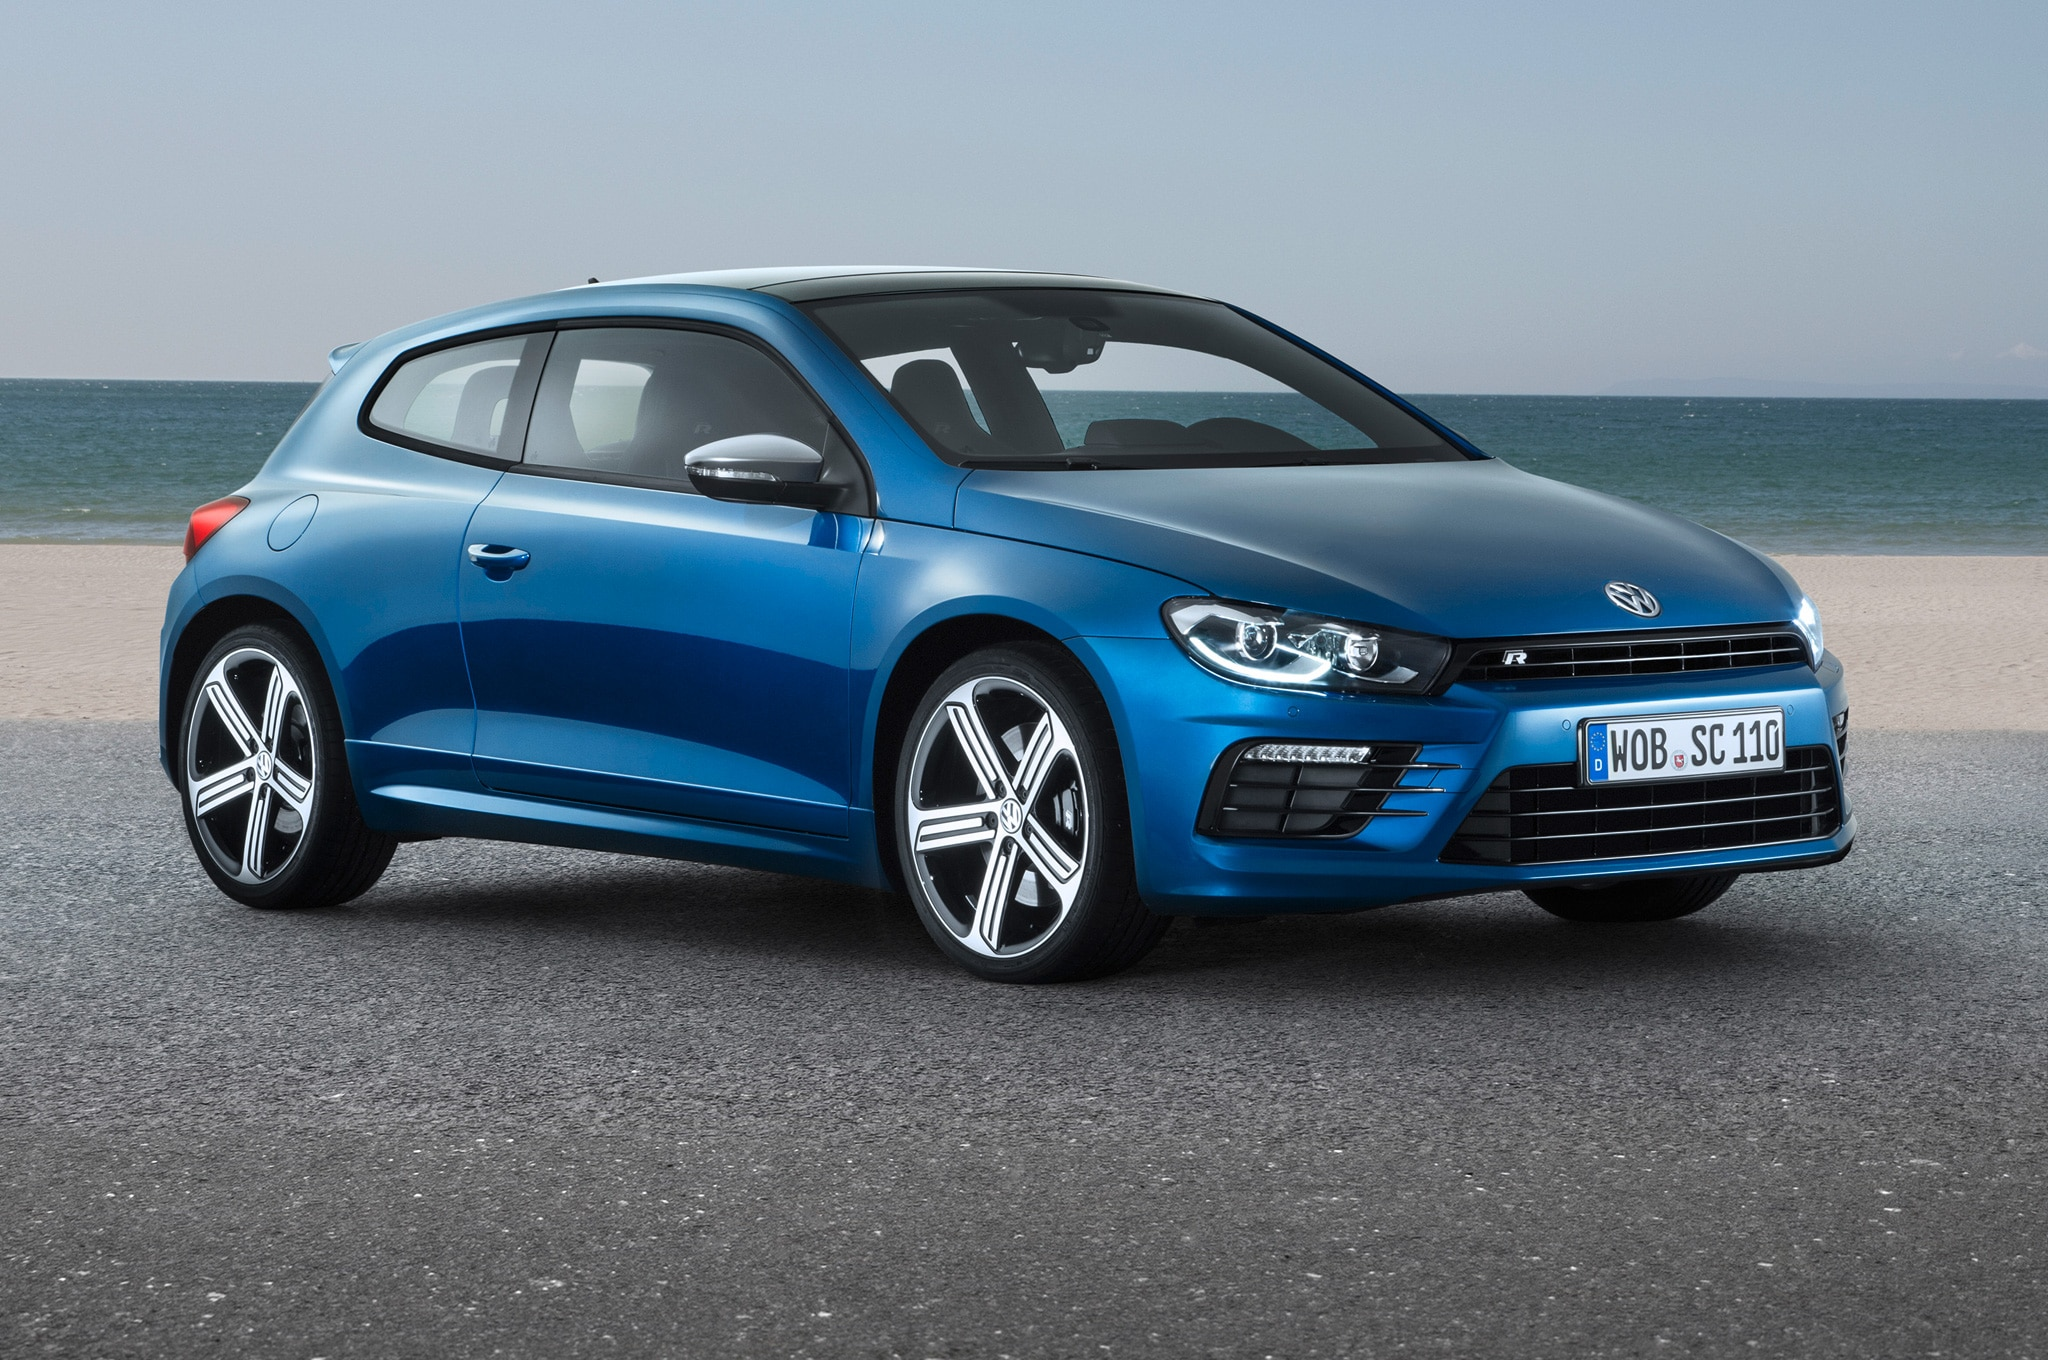 Facelifted Volkswagen Scirocco R Front Side View2